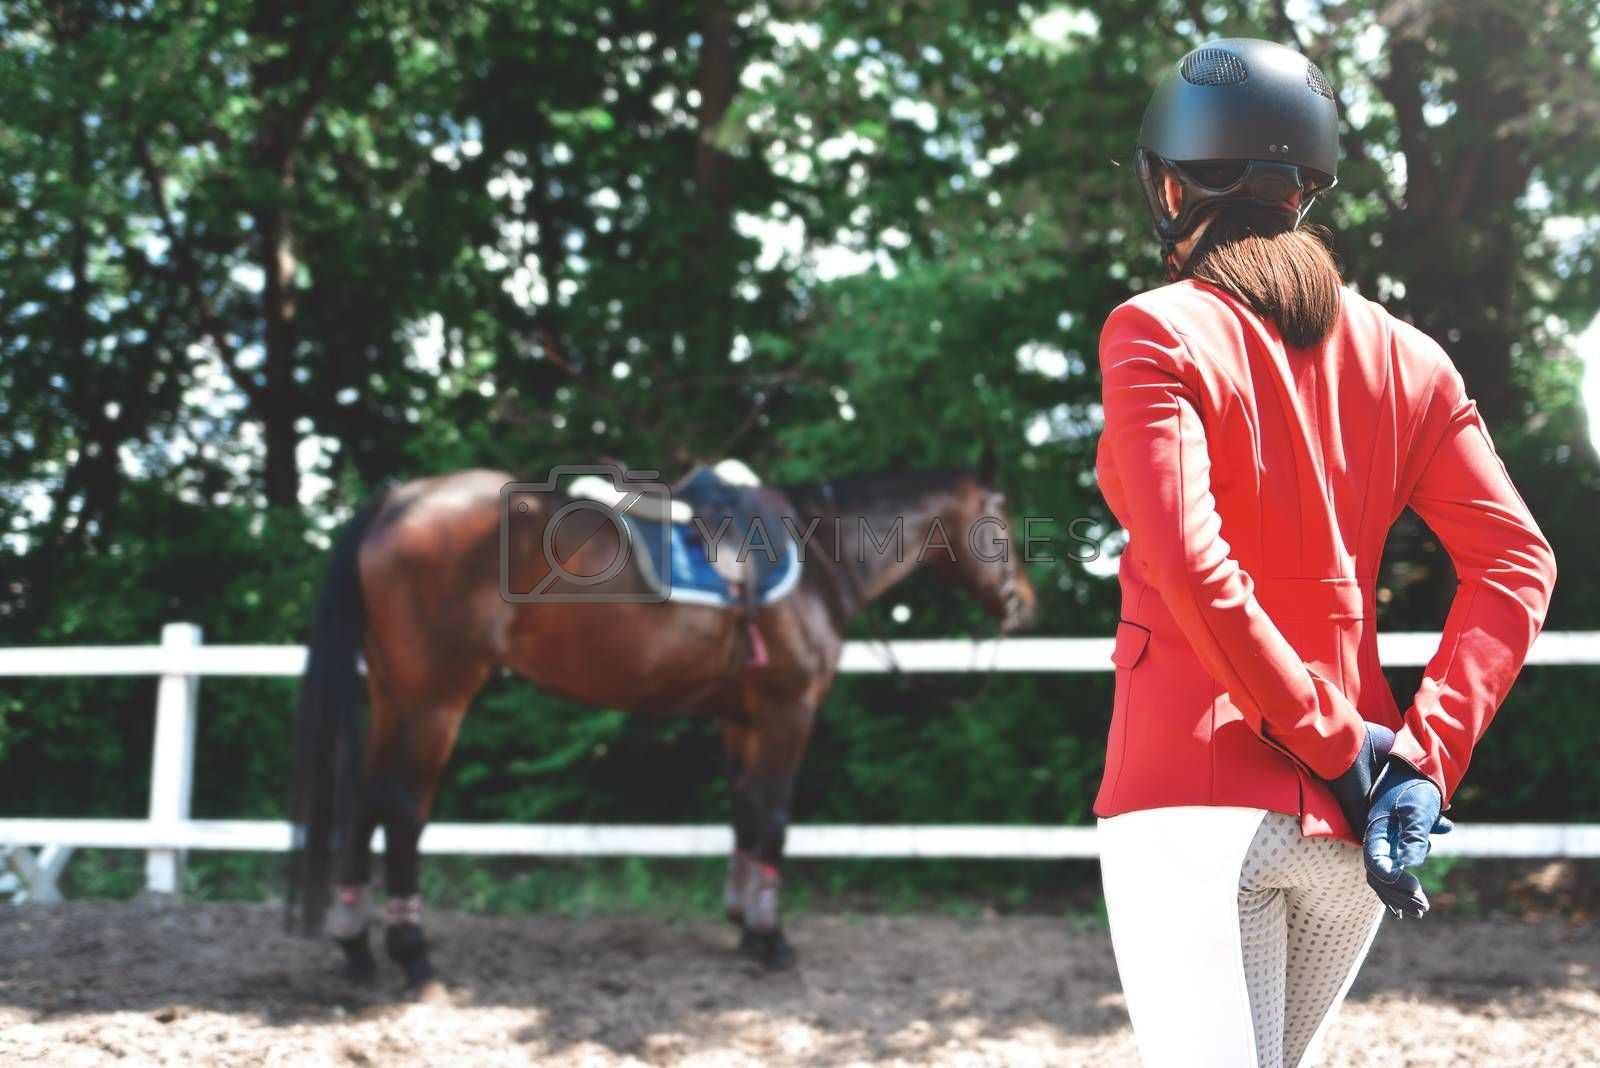 Girl rider adjusts saddle on her horse to take part in horse races